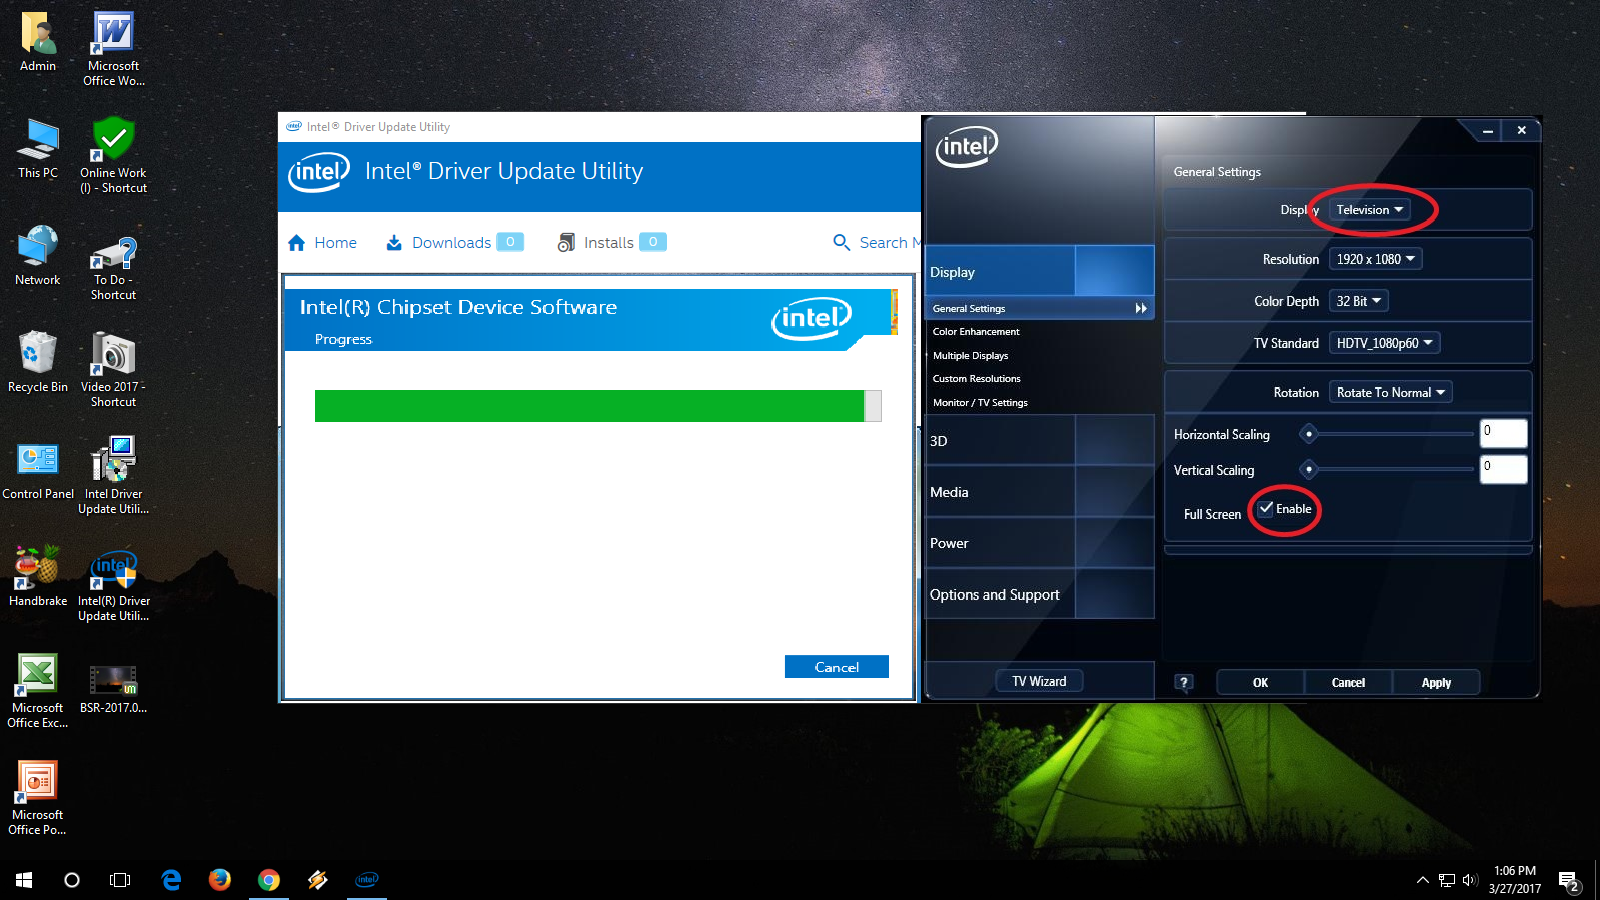 Intel Hd 3600 Driver Download For Windows 10